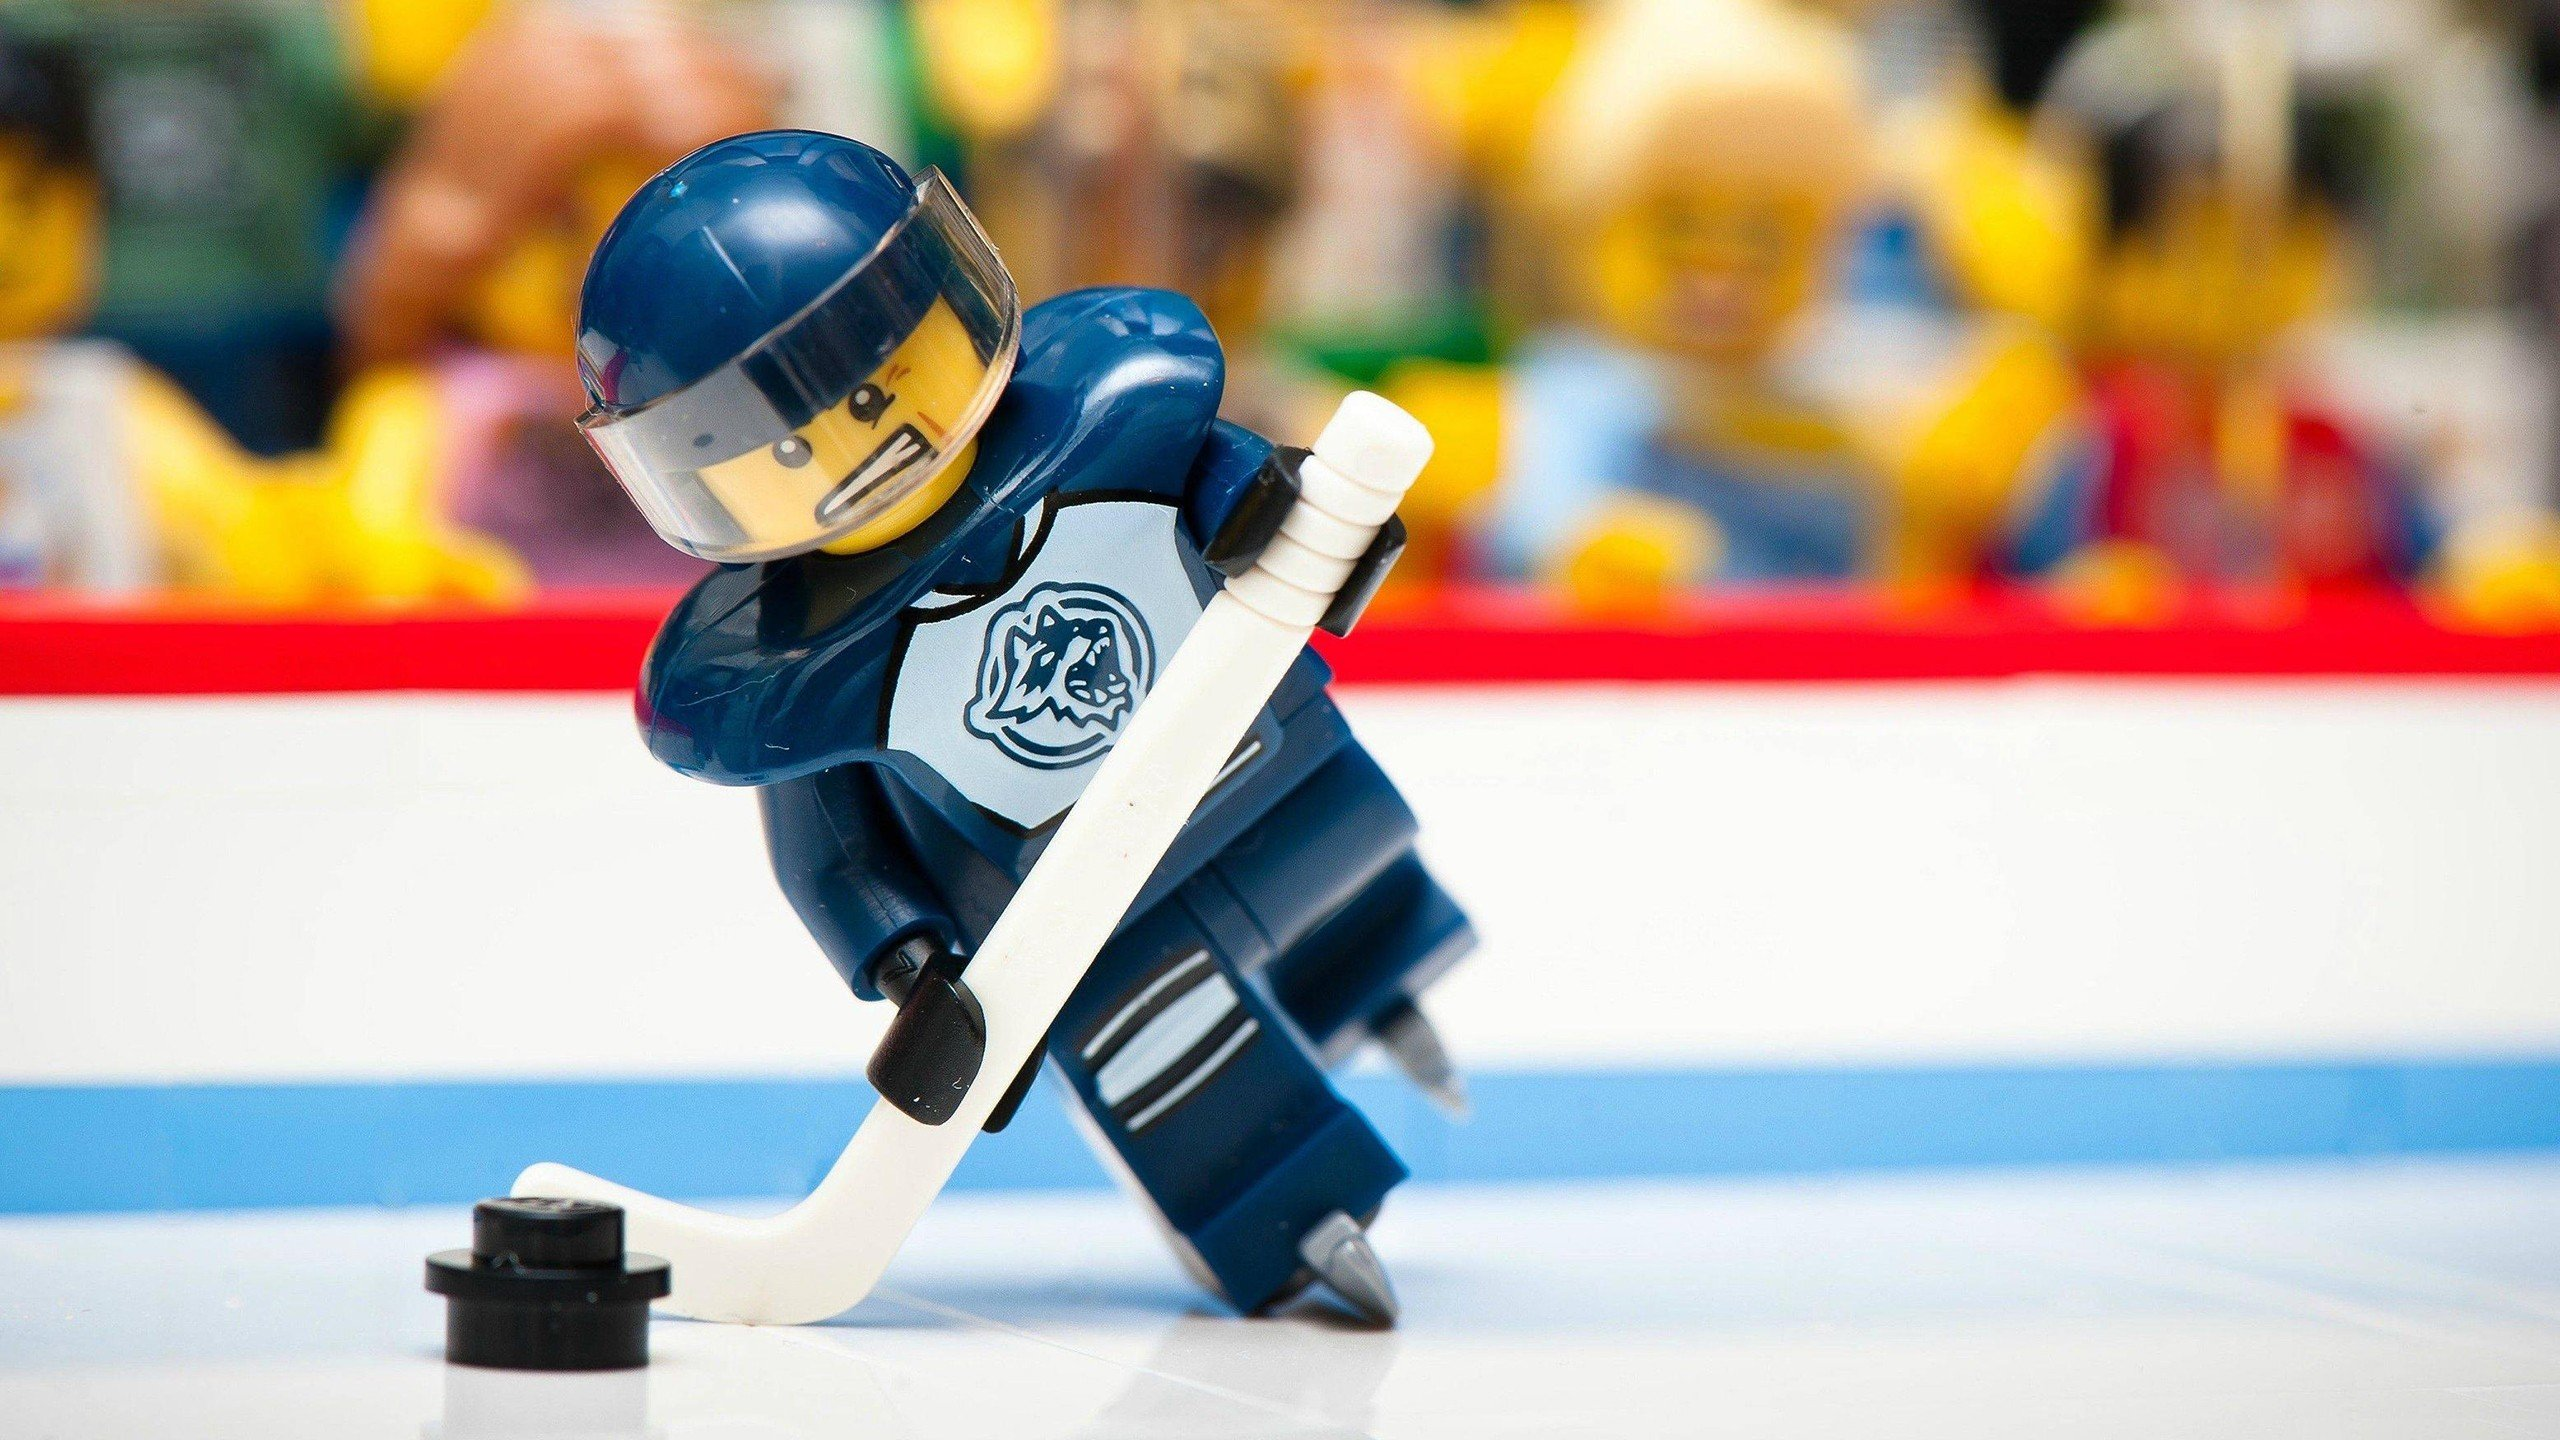 Lego Ice Hockey Nhl Puck Hockey Skates Ice Rink Hockey Stick Visors Hd Wallpapers Desktop And Mobile Images Photos